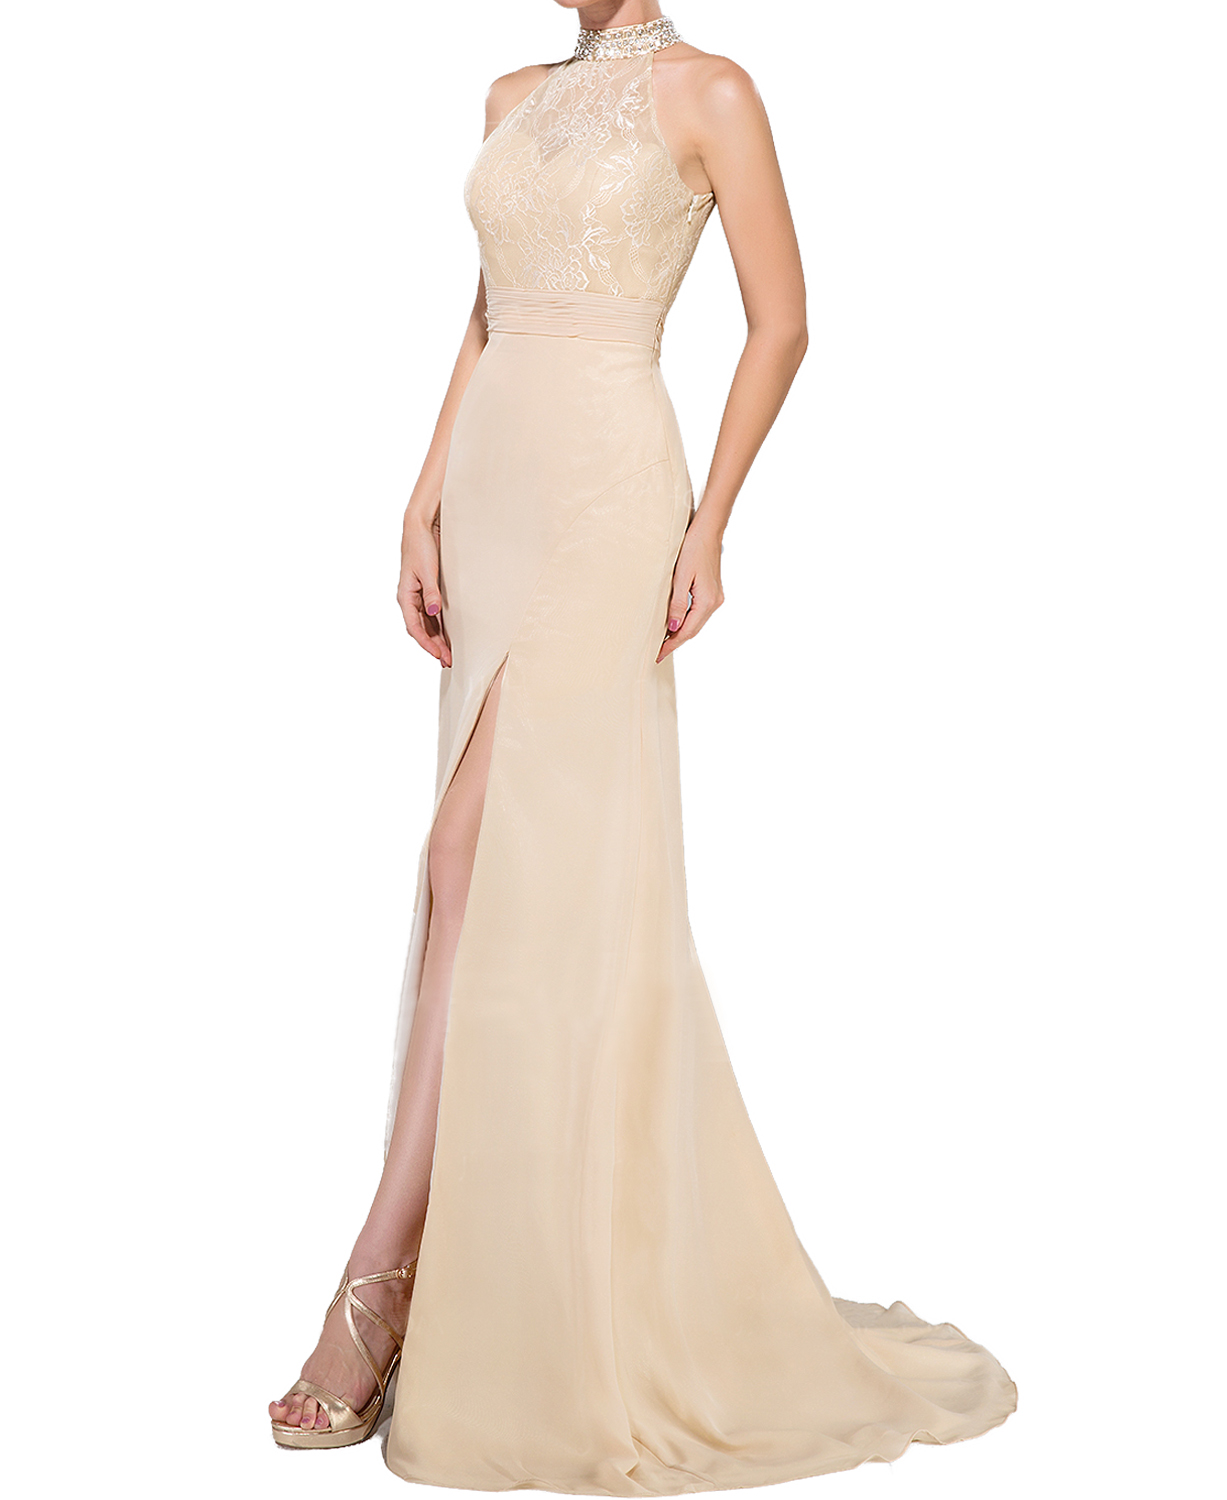 P105 Trumpet Mermaid High Neck Sweep Train Chiffon Lace Evening Dress With Ruffle Beading Sequins Split Fronthalter Neck Lace Mermaid Champagne